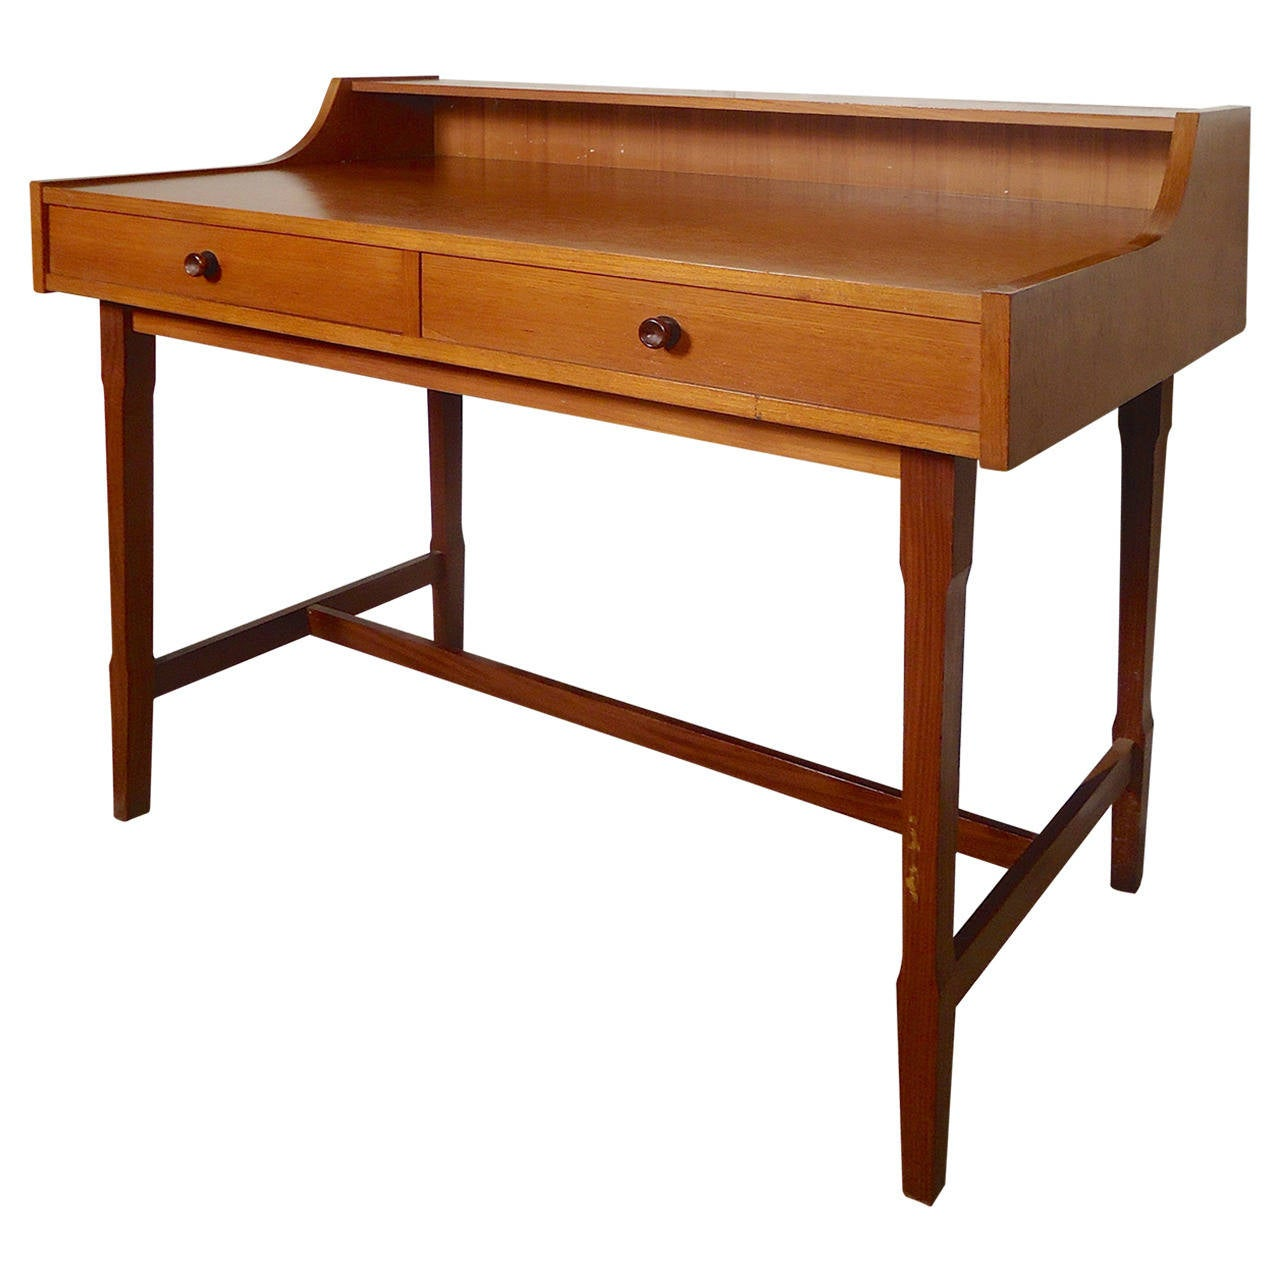 Danish Modern Writing Desk At 1stdibs. Kids Desks Target. Nasdaq Directors Desk. Drawer Stairs For Bunk Bed. Target Kids Desk Chair. Smart Pool Table. White Two Drawer File Cabinet. Tall Glass Table. Keurig K Cup Drawer